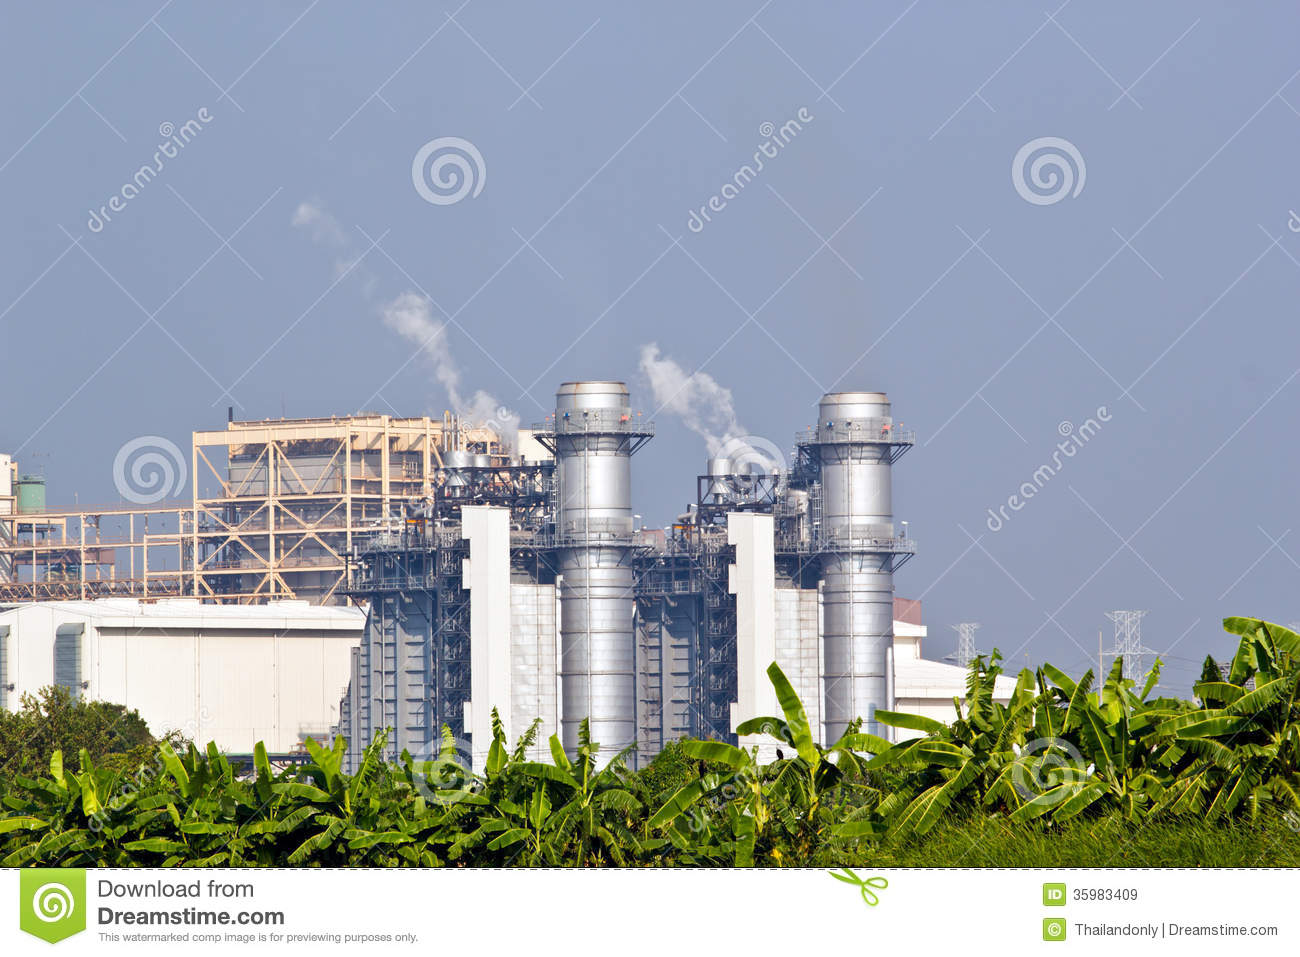 Natural Gas Combined Cycle Power Plant Royalty Free Stock